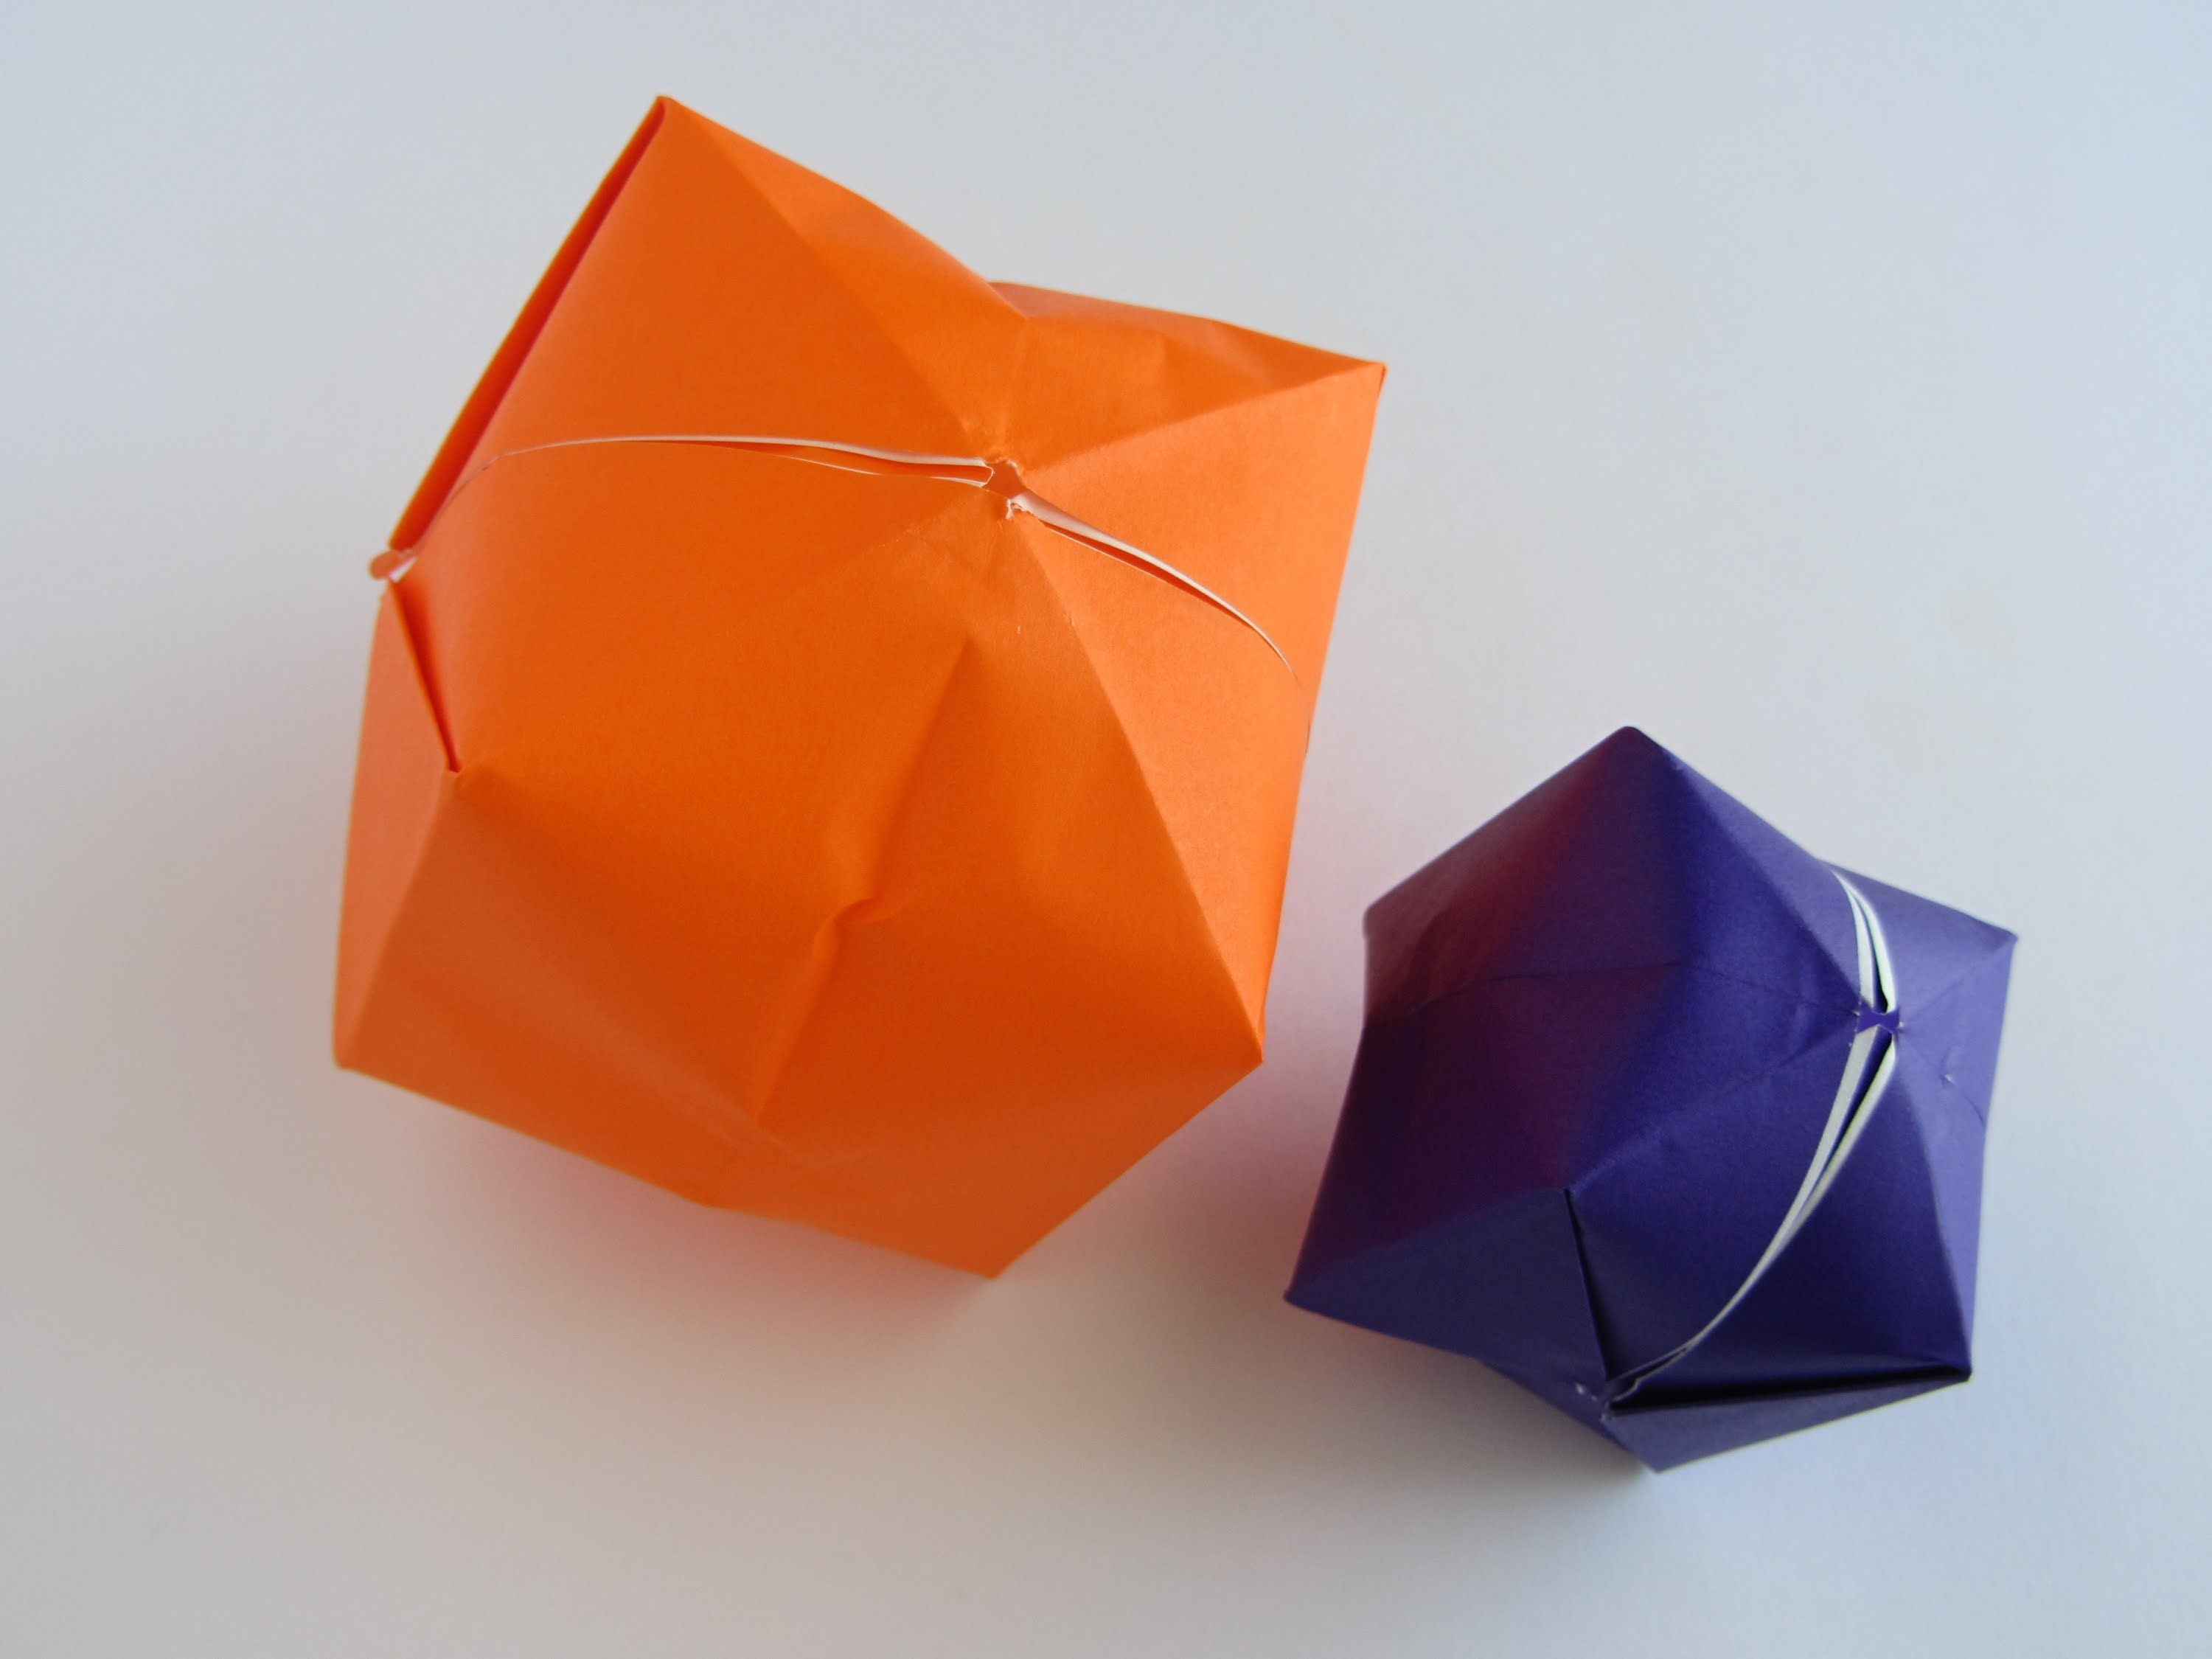 Folding Instructions For The Origami Water Balloon Photo